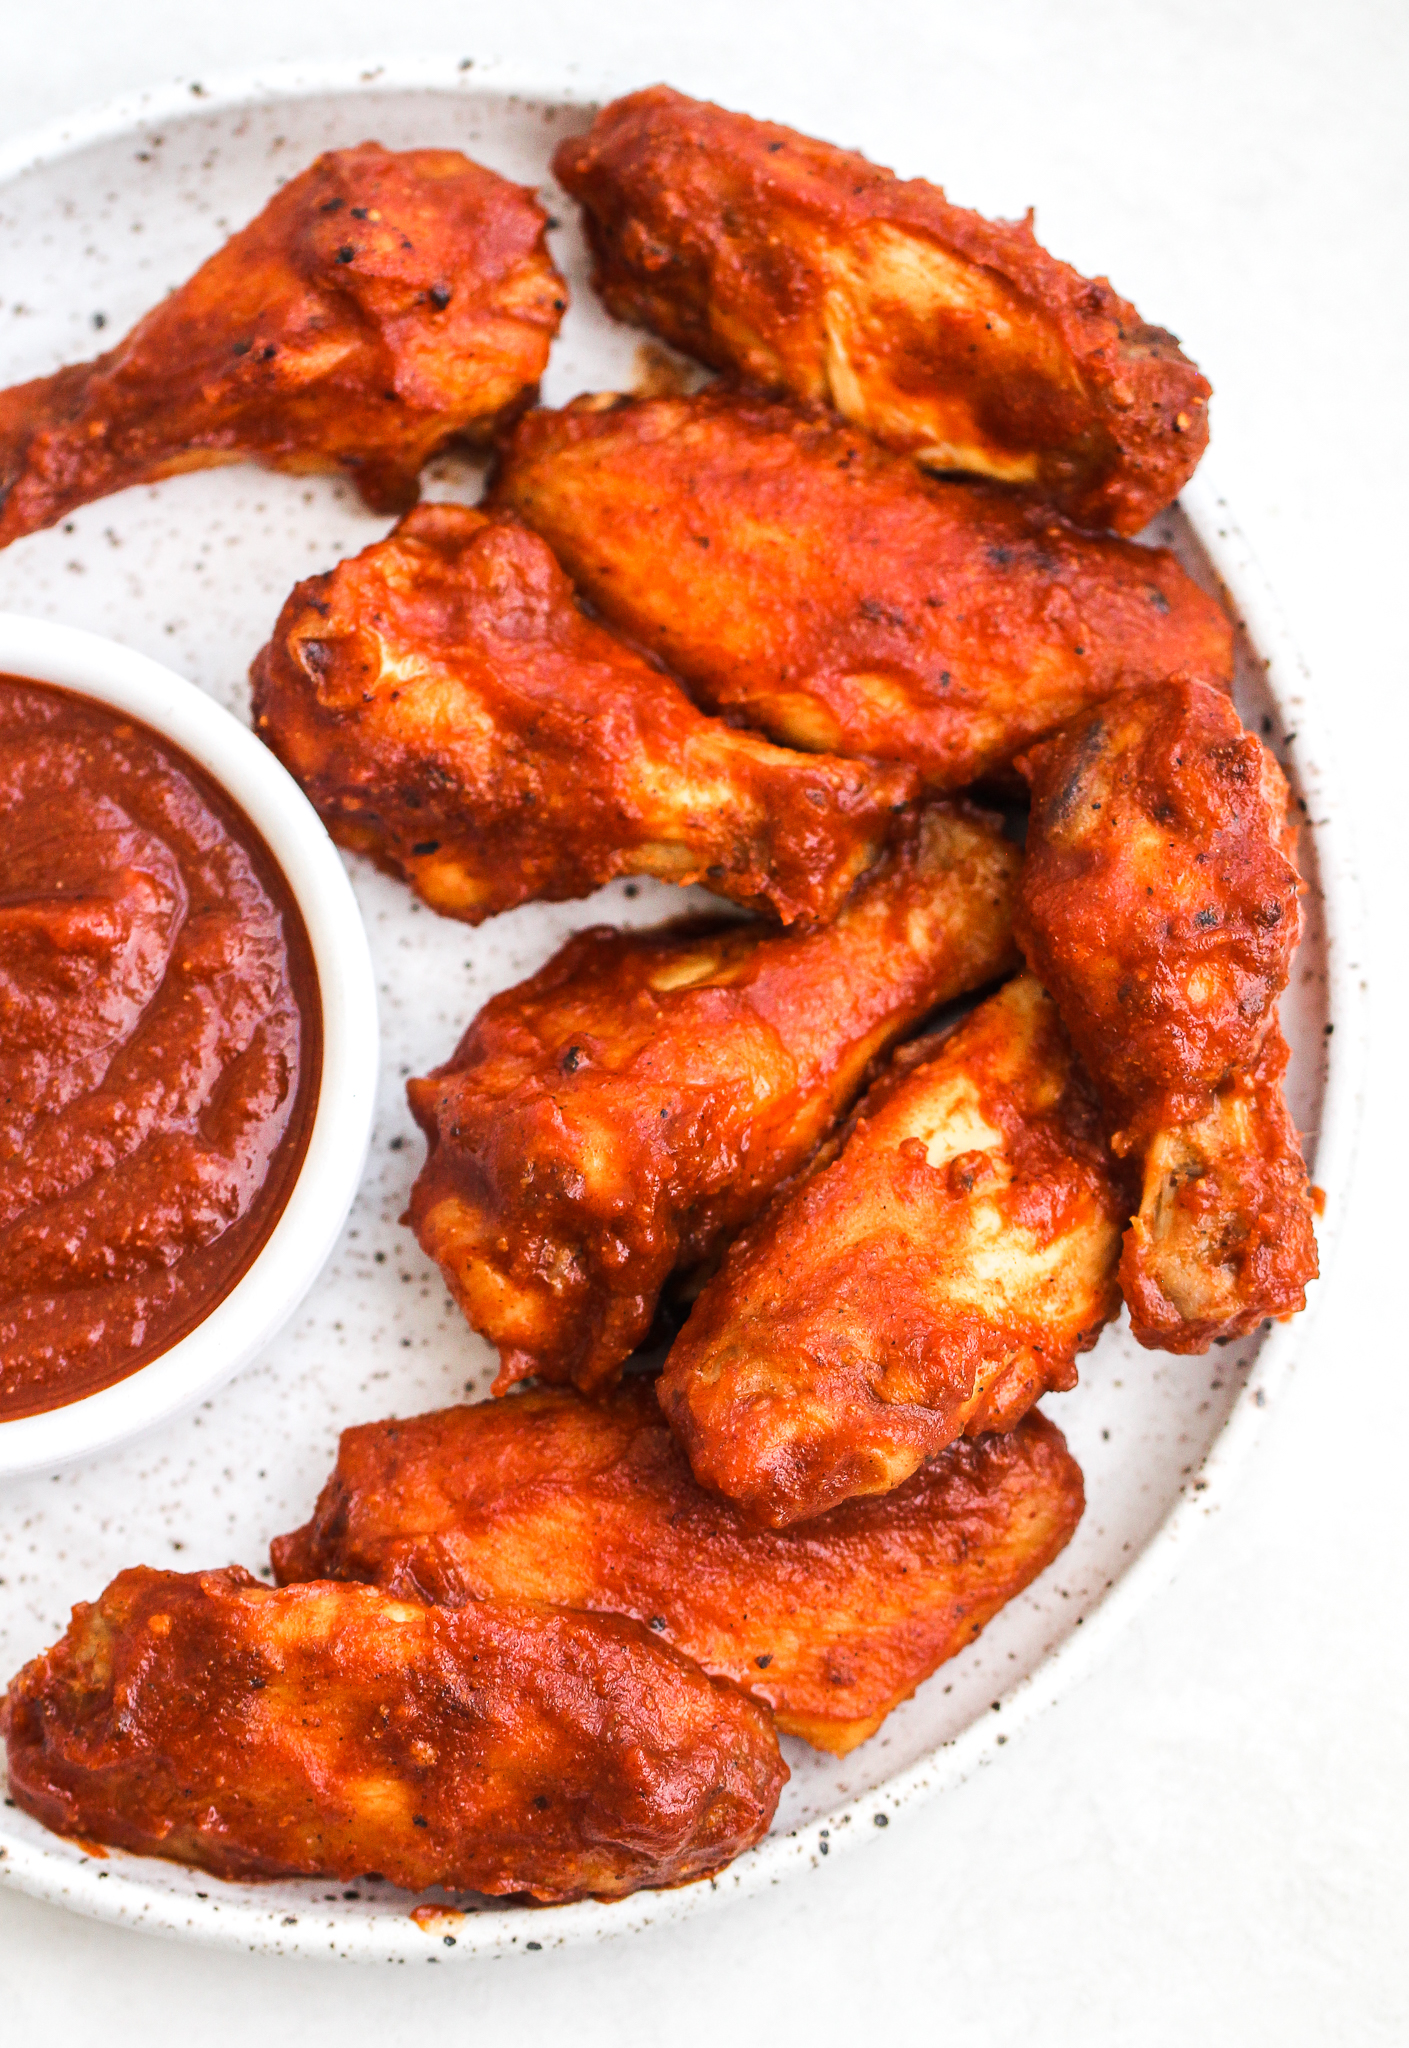 BBQ chicken wing sections on a speckled ceramic plate with a side dish of BBQ sauce